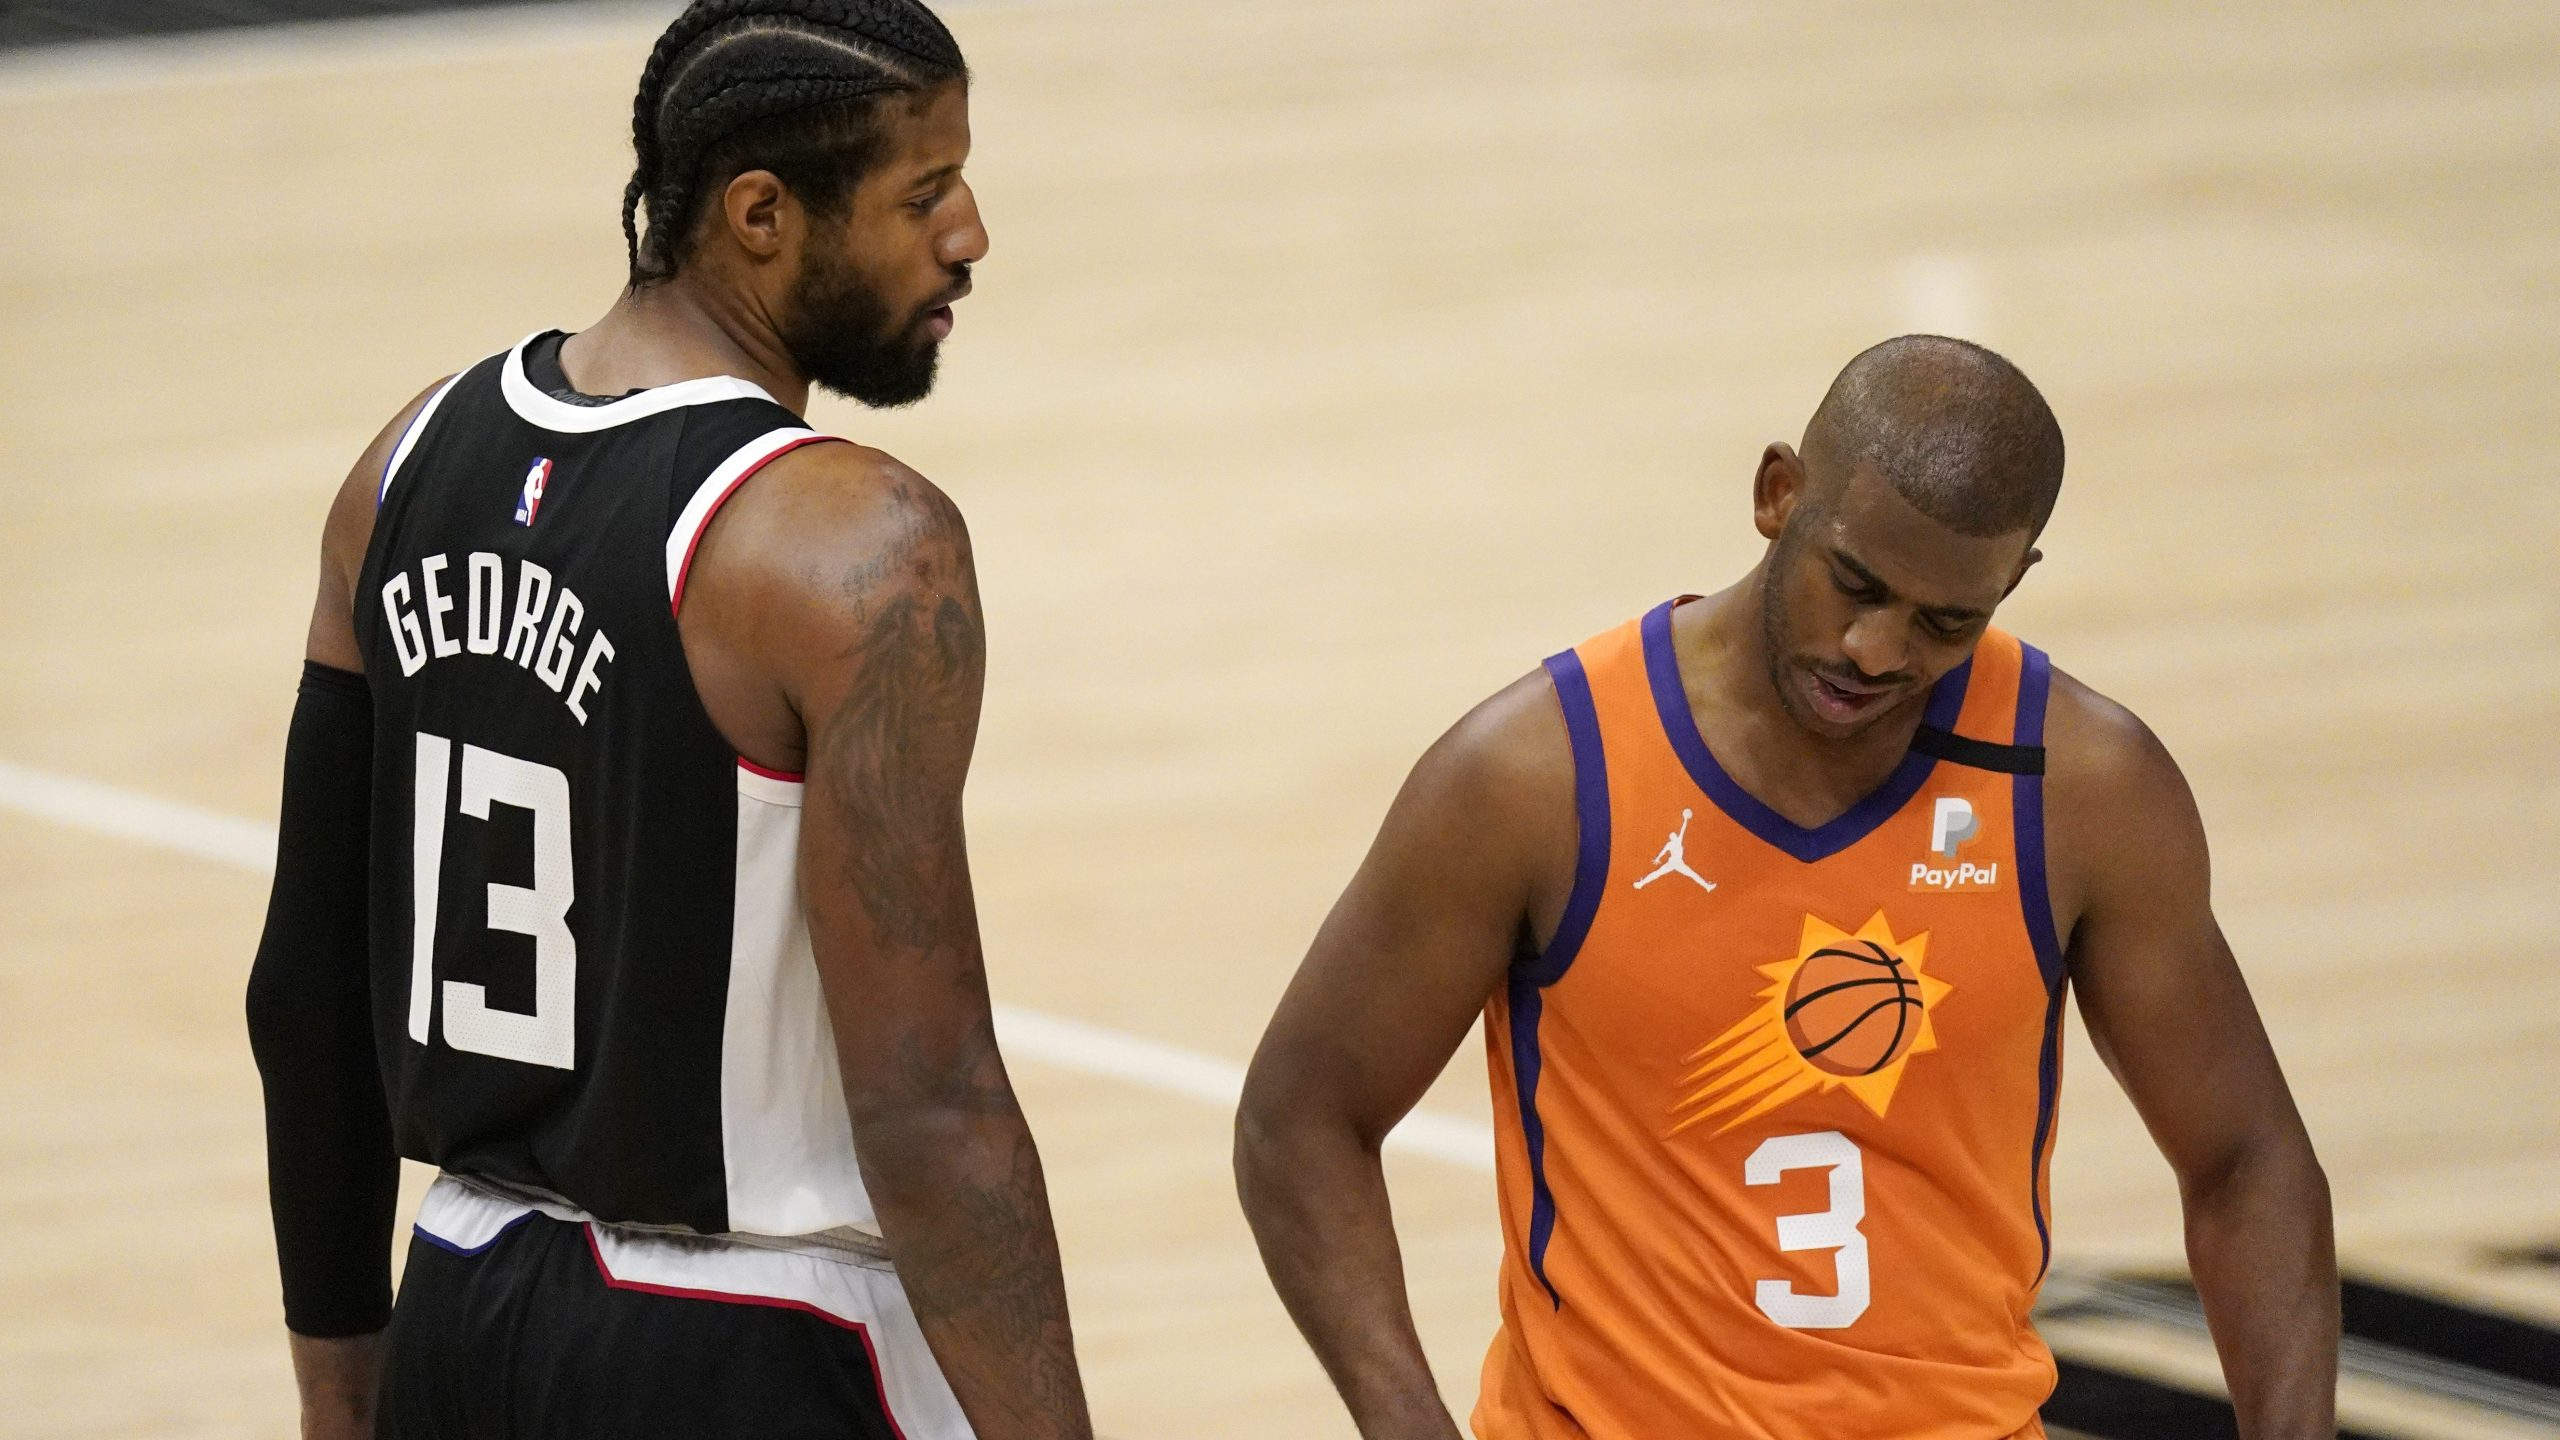 Los Angeles Clippers guard Paul George, left, tries to talk to Phoenix Suns guard Chris Paul during the second half in Game 3 of the NBA basketball Western Conference Finals in Los Angeles on June 24, 2021. (Mark J. Terrill / Associated Press)